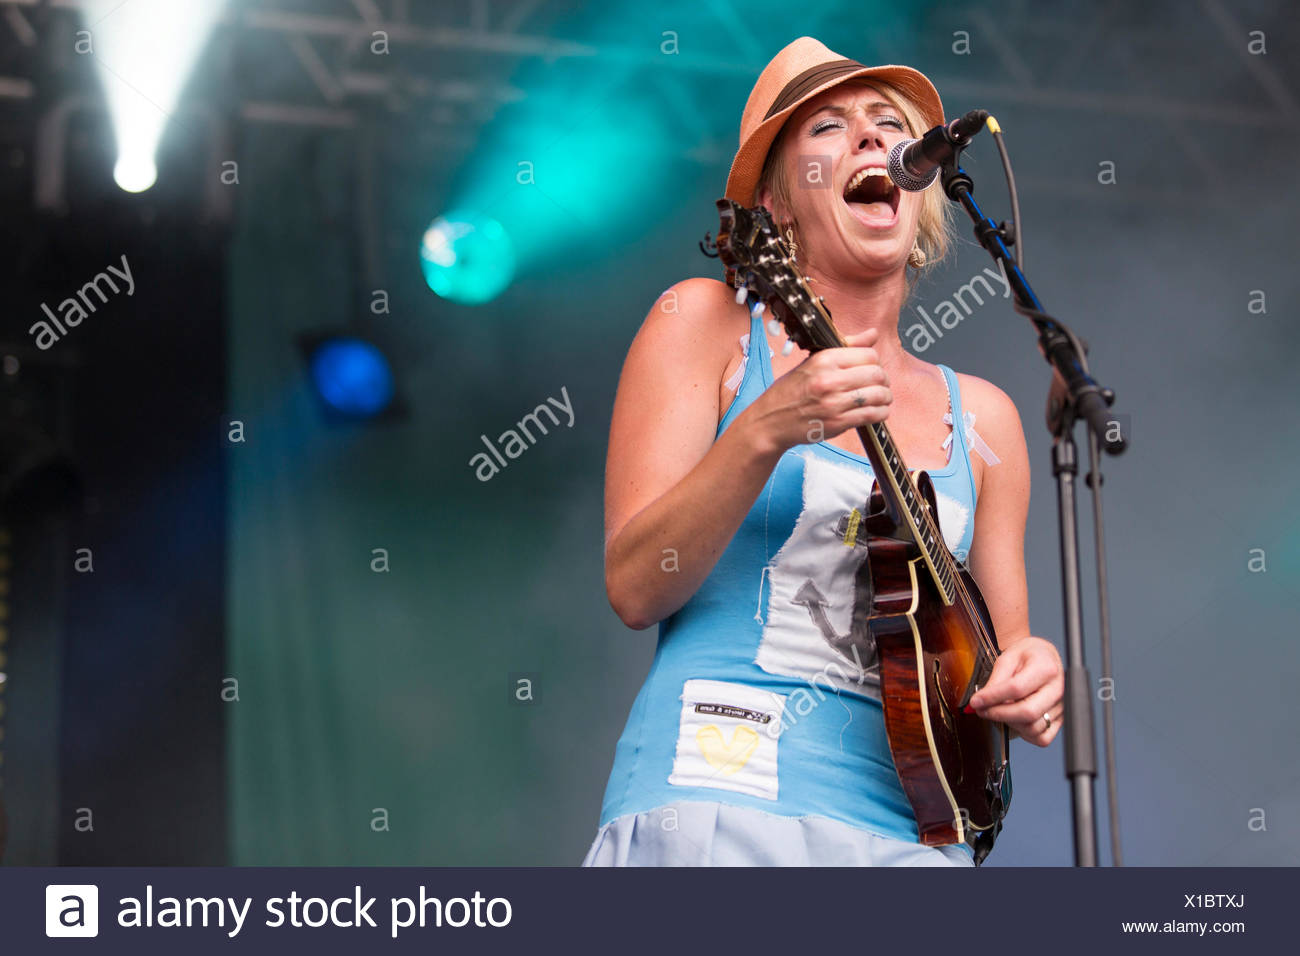 Turid Jørgensen with a mandolin from the Norwegian girl band Katzenjammer performing live at Heitere Open Air in Zofingen Stock Photo